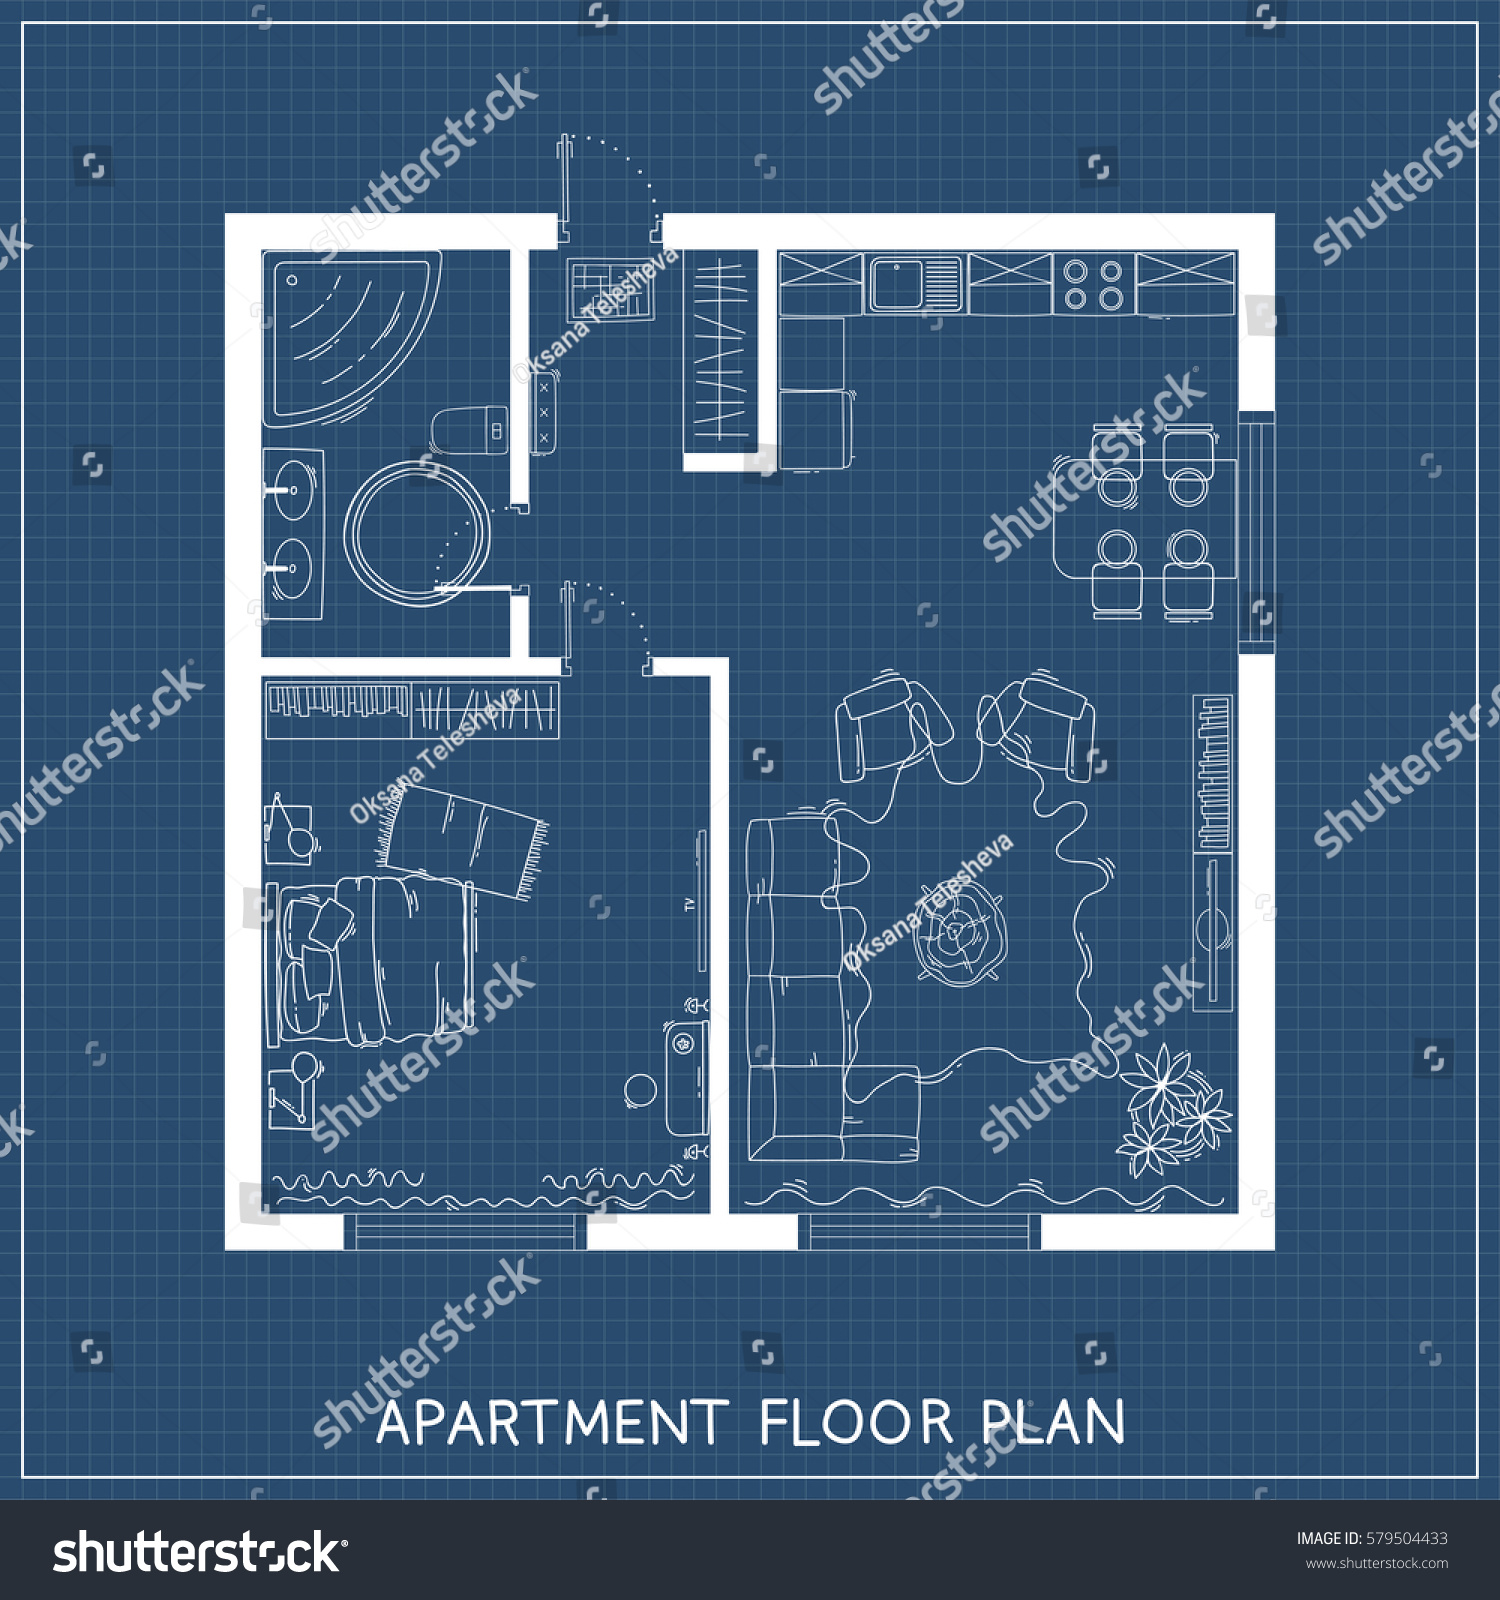 Architectural Blueprint Furniture Top View Stock Vector (Royalty